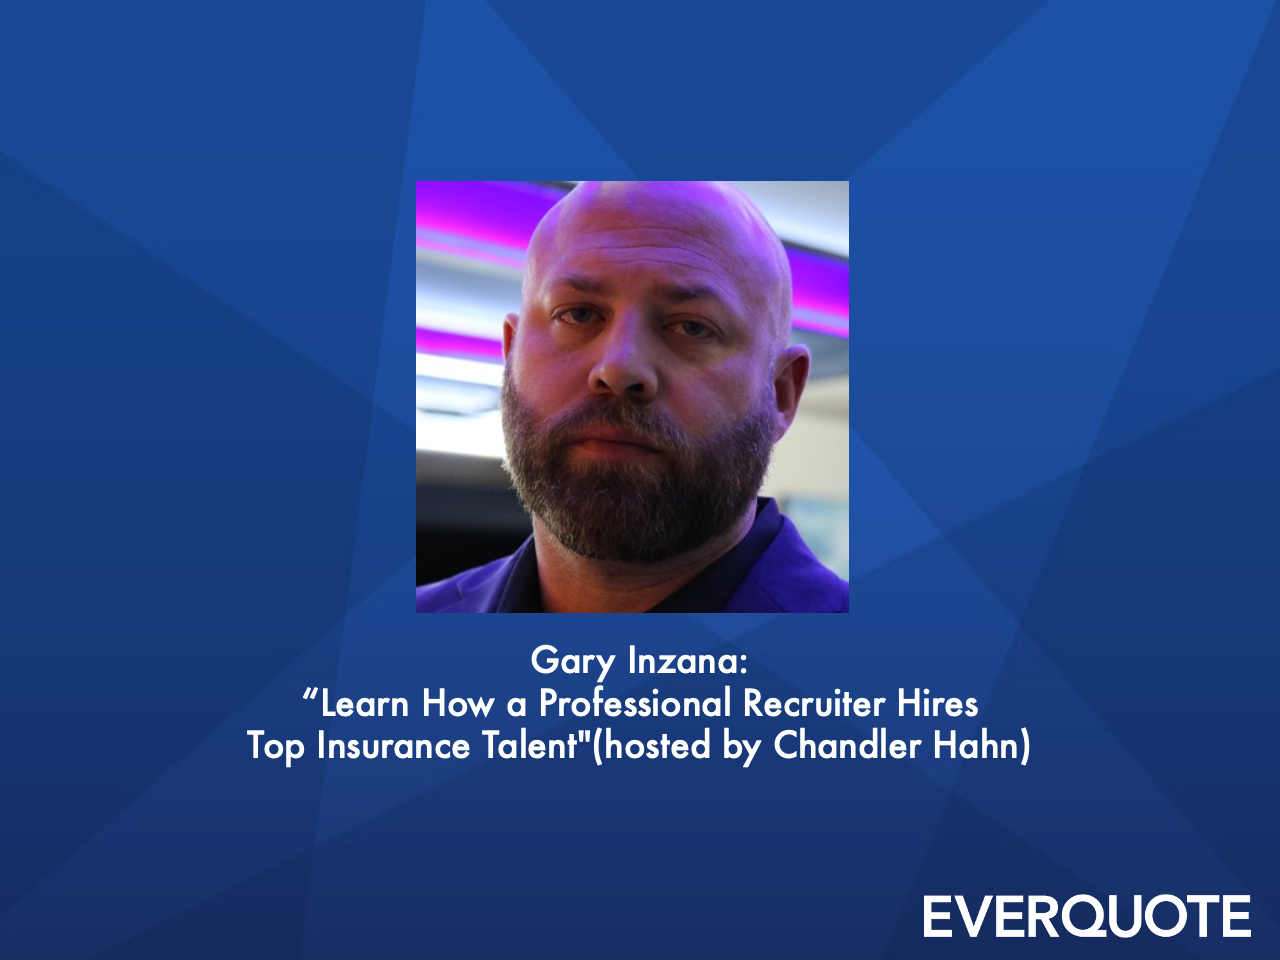 Learn How a Professional Recruiter Hires Top Insurance Talent with Gary Inzana